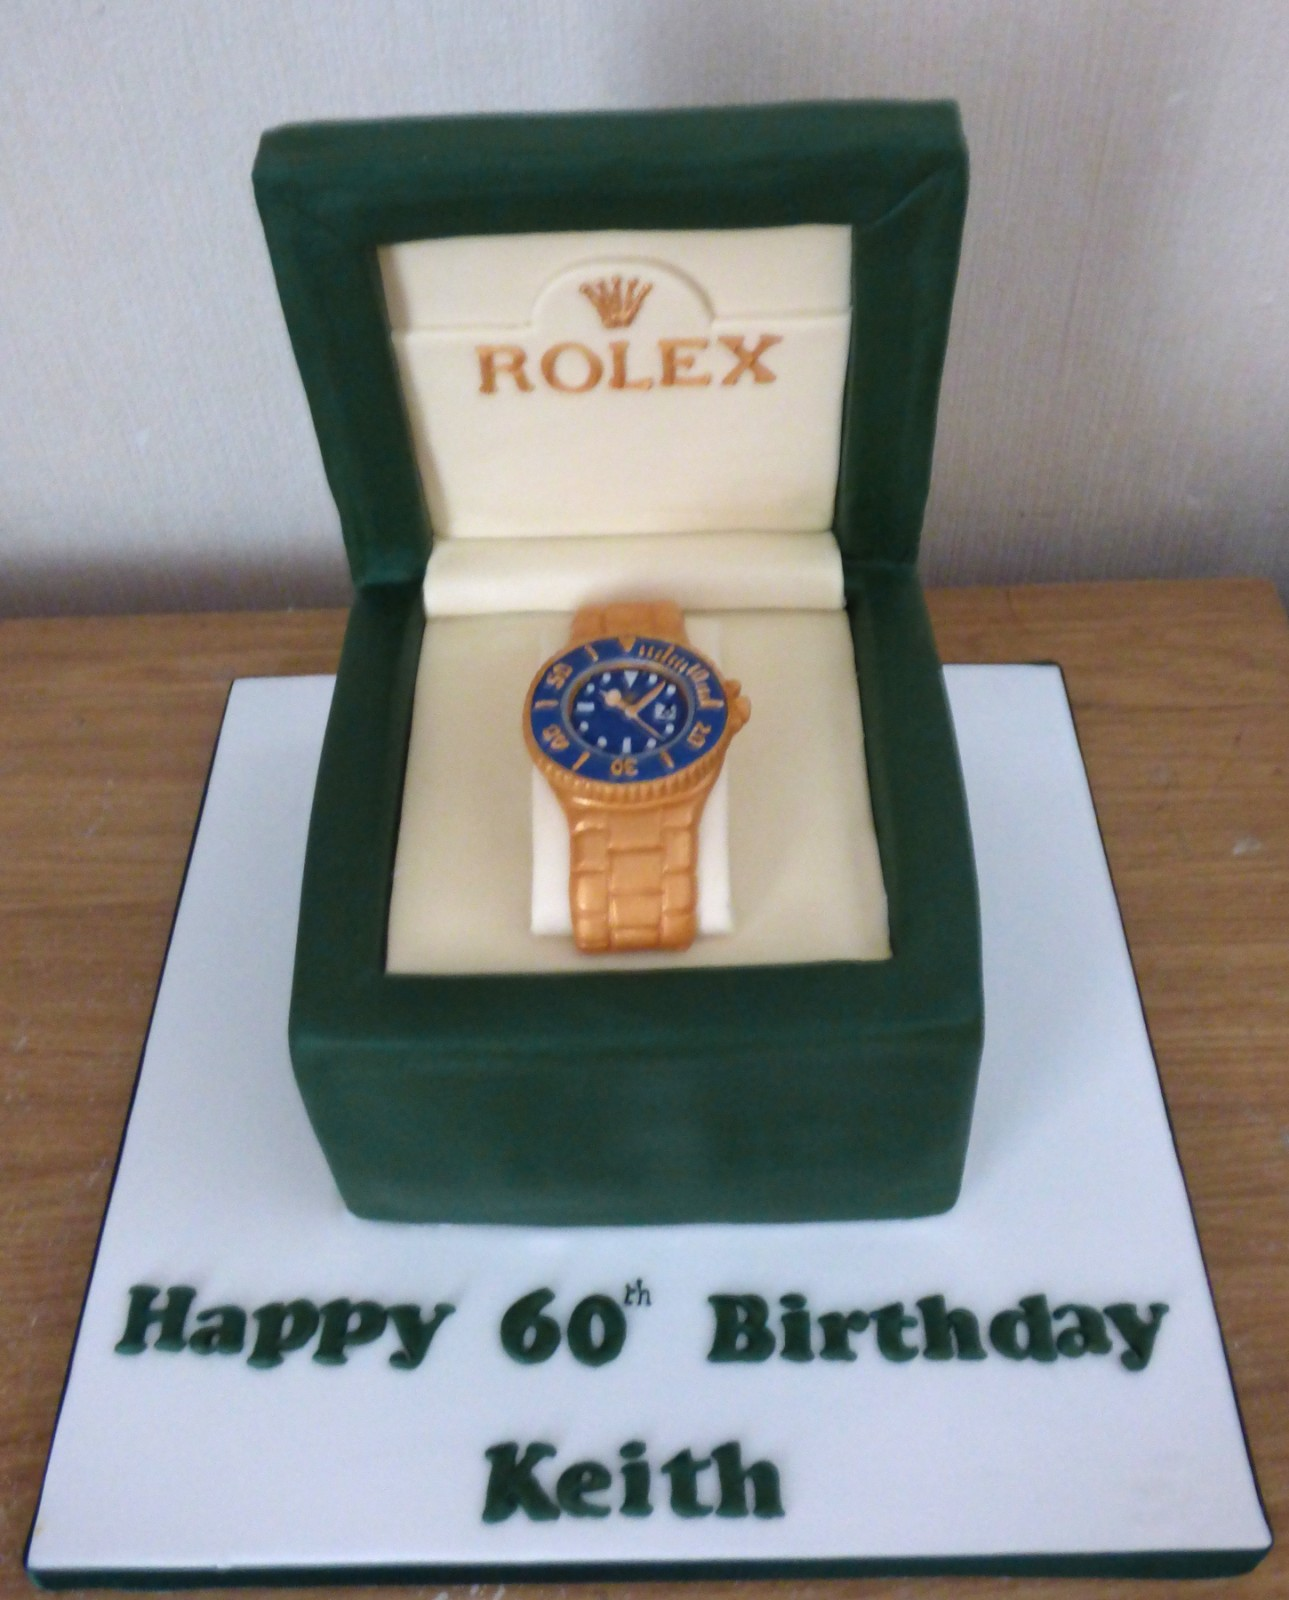 Tremendous Gold Blue Faced Rolex Watch In A Box Birthday Cake Susies Cakes Personalised Birthday Cards Arneslily Jamesorg